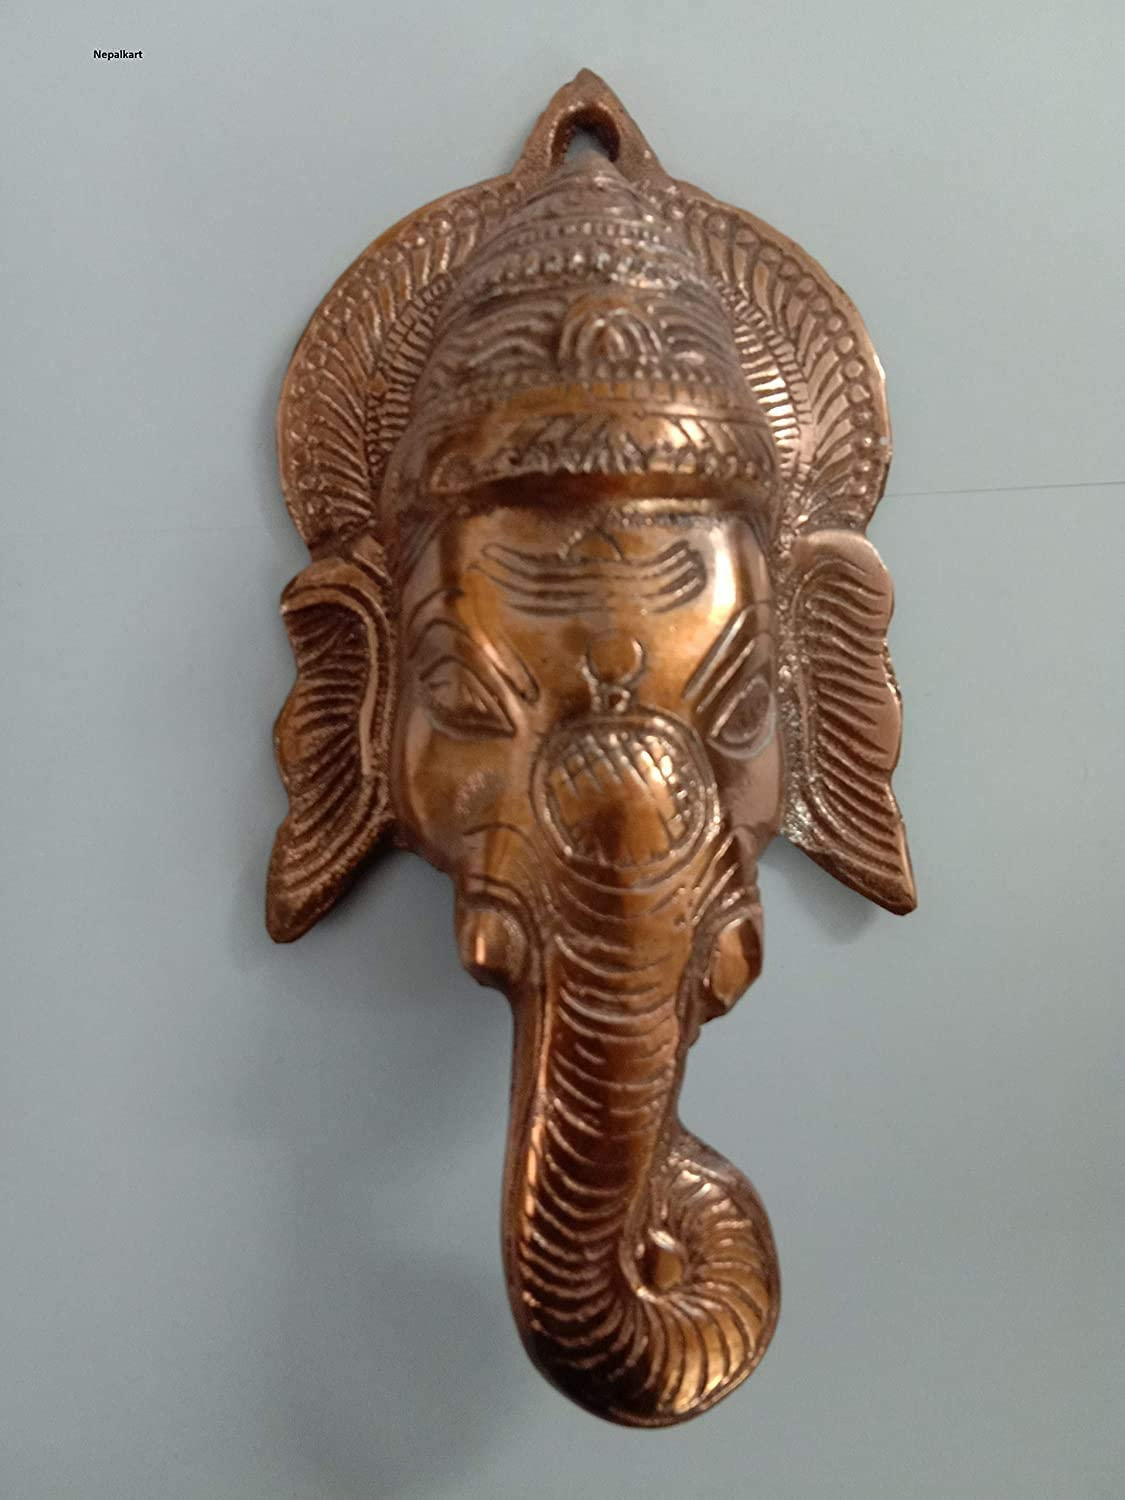 Lord Ganesh Wall Hanging decor- Ganpati in Sitting Pose -Metal Wall Showpiece for Wall Decor, Room Decor, Home Decor and Gifts diwali gift